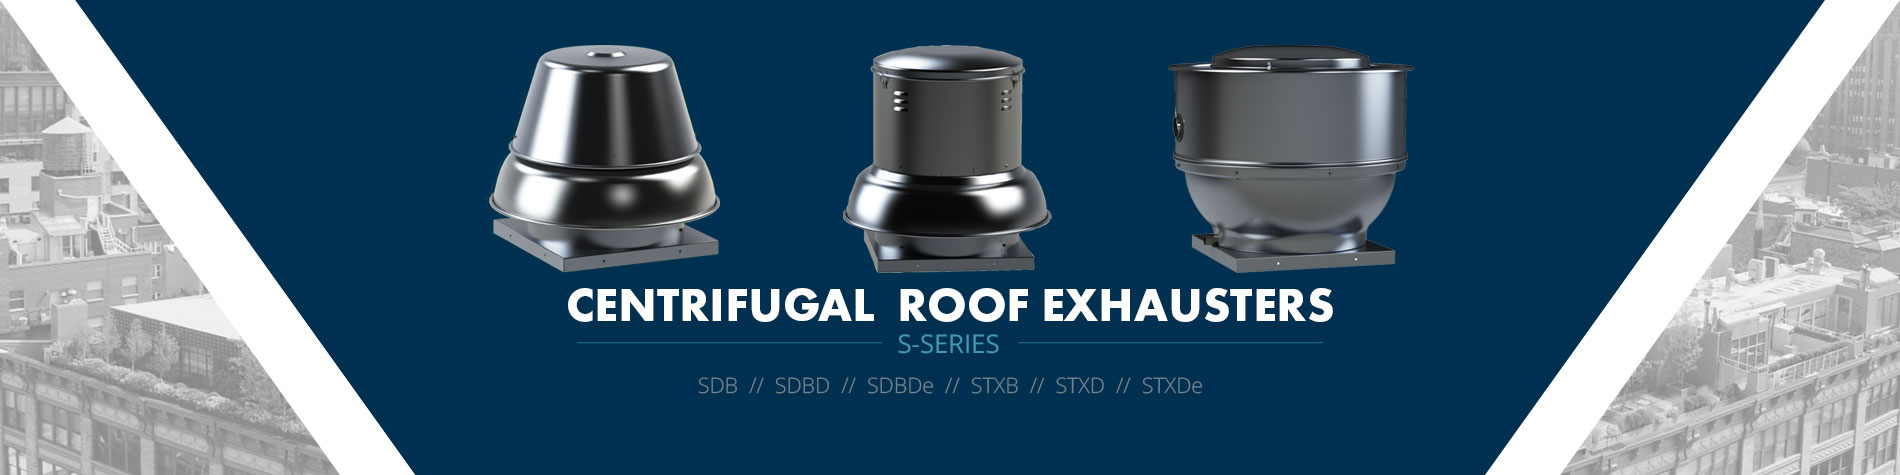 Centrifugal Roof Exhausters